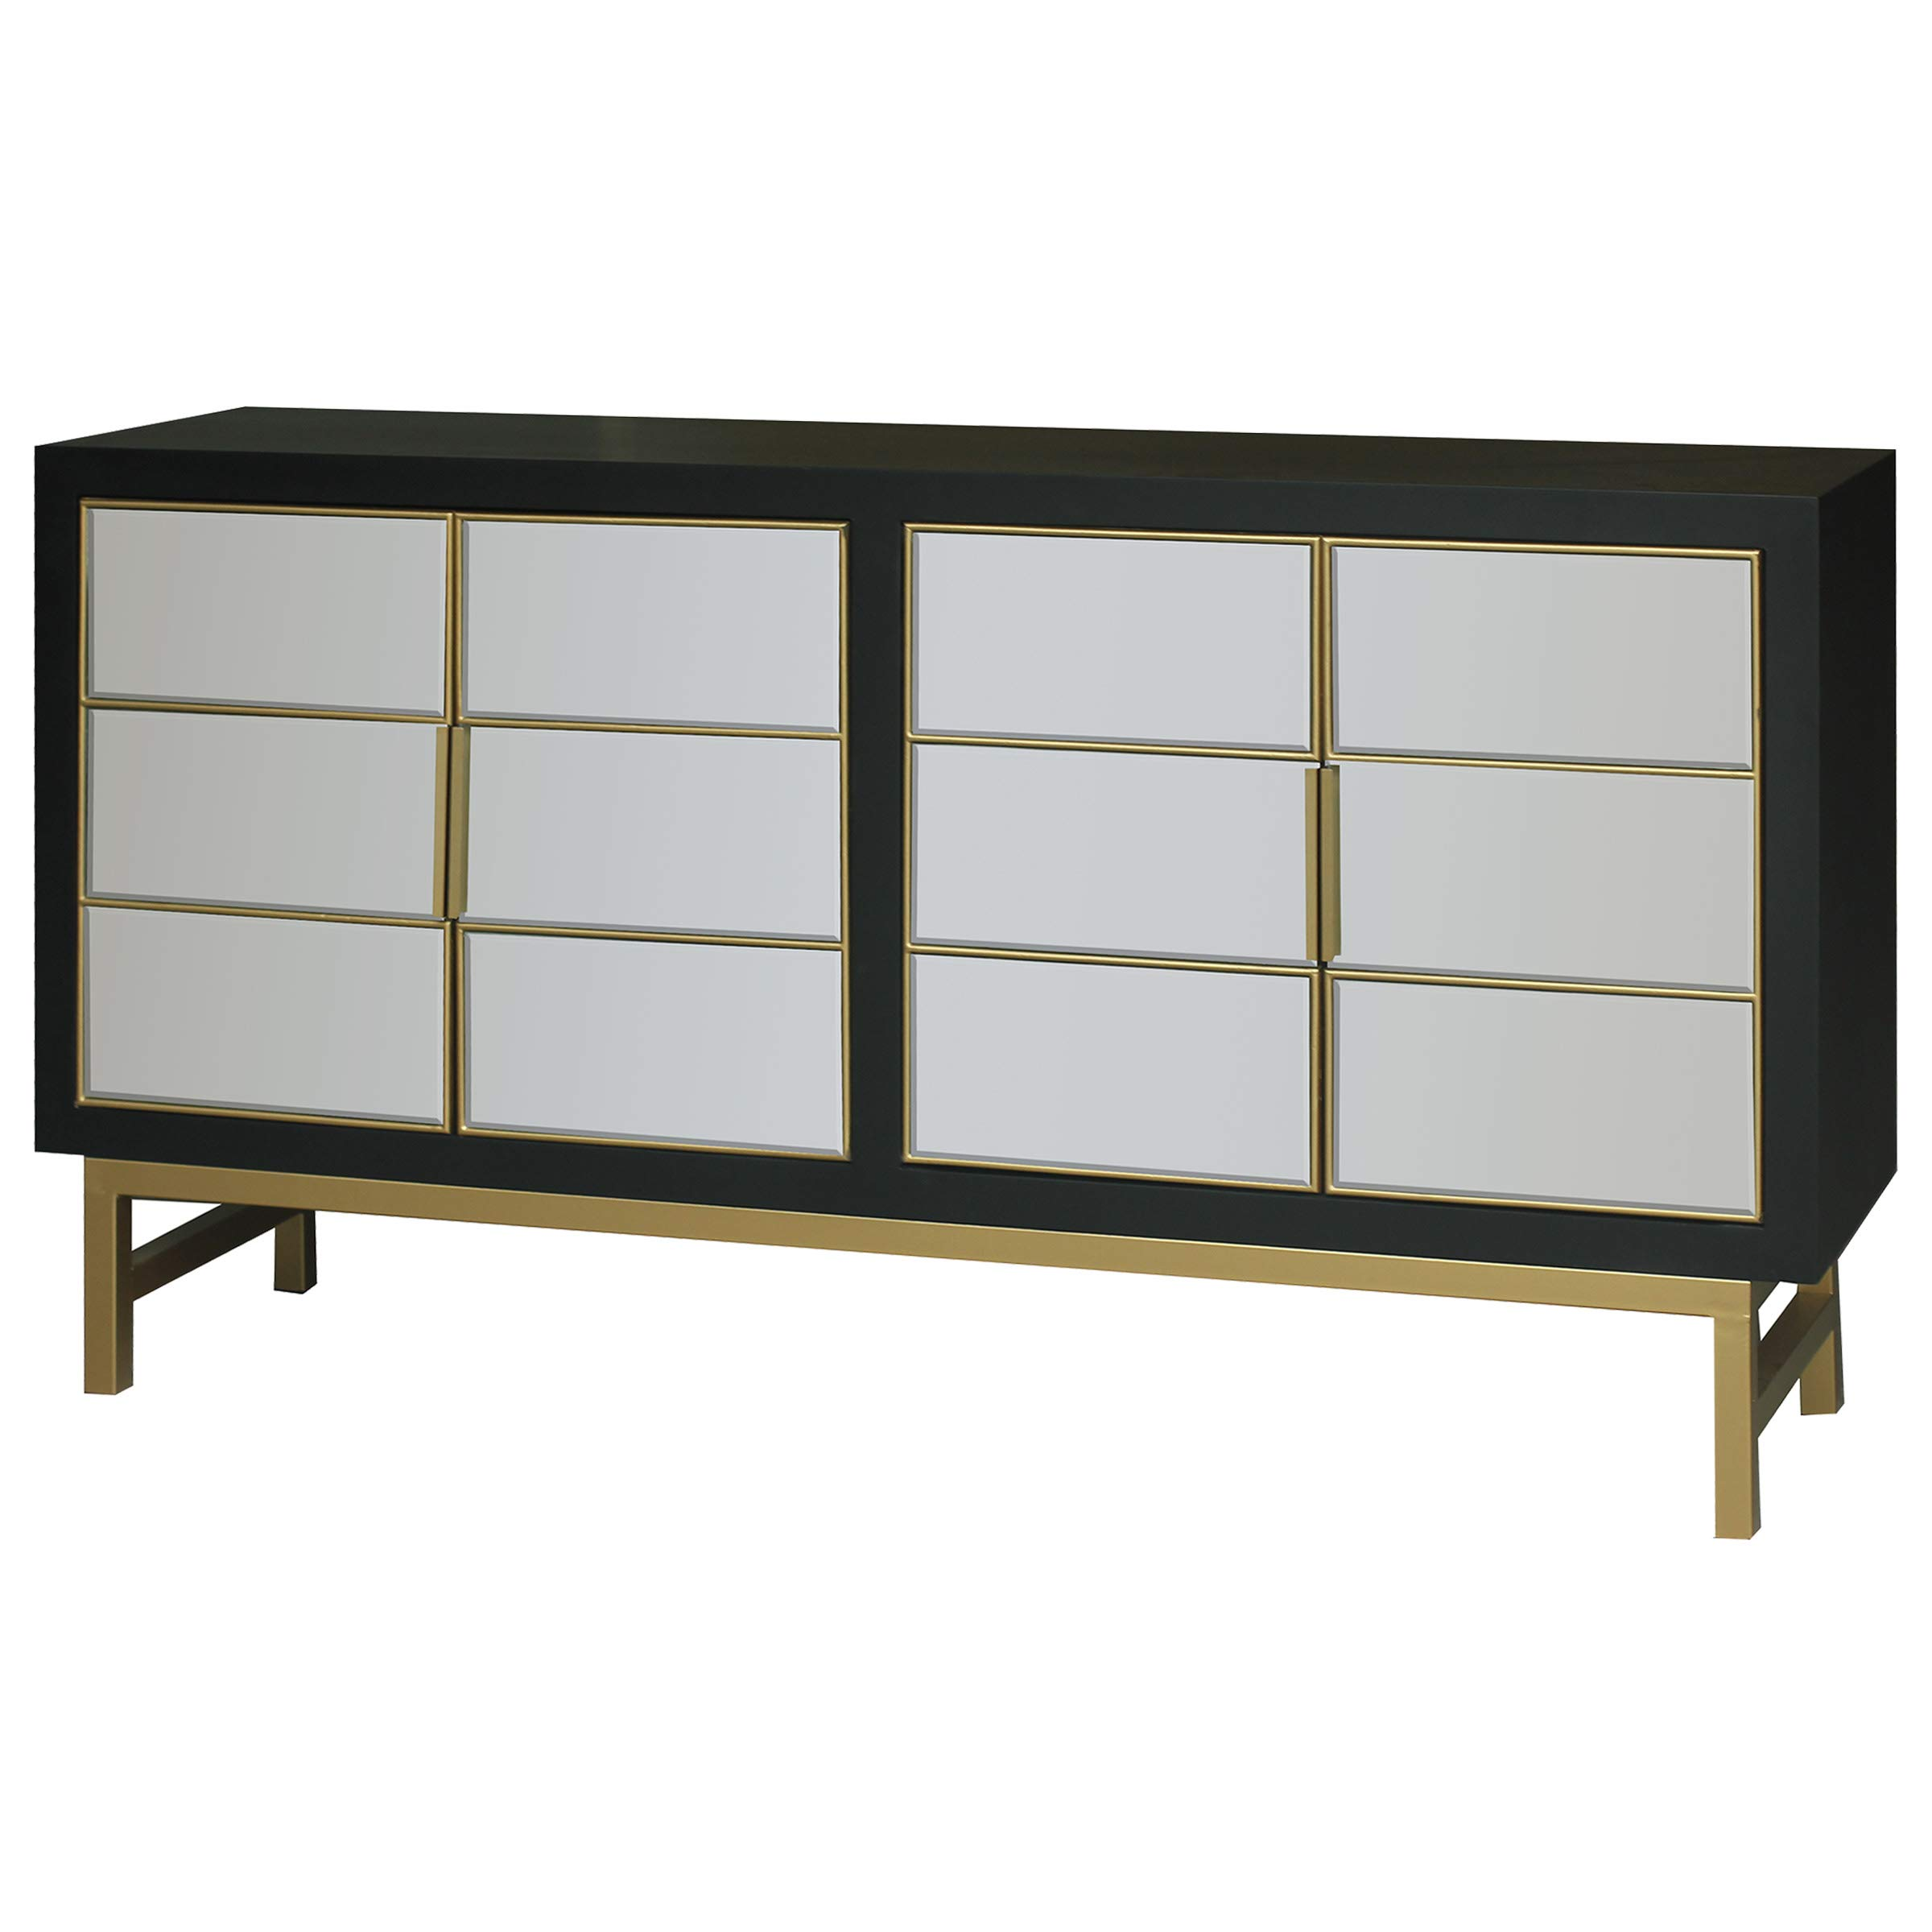 Collective Design Credenza, Satin Black/Mirrored by Collective Design